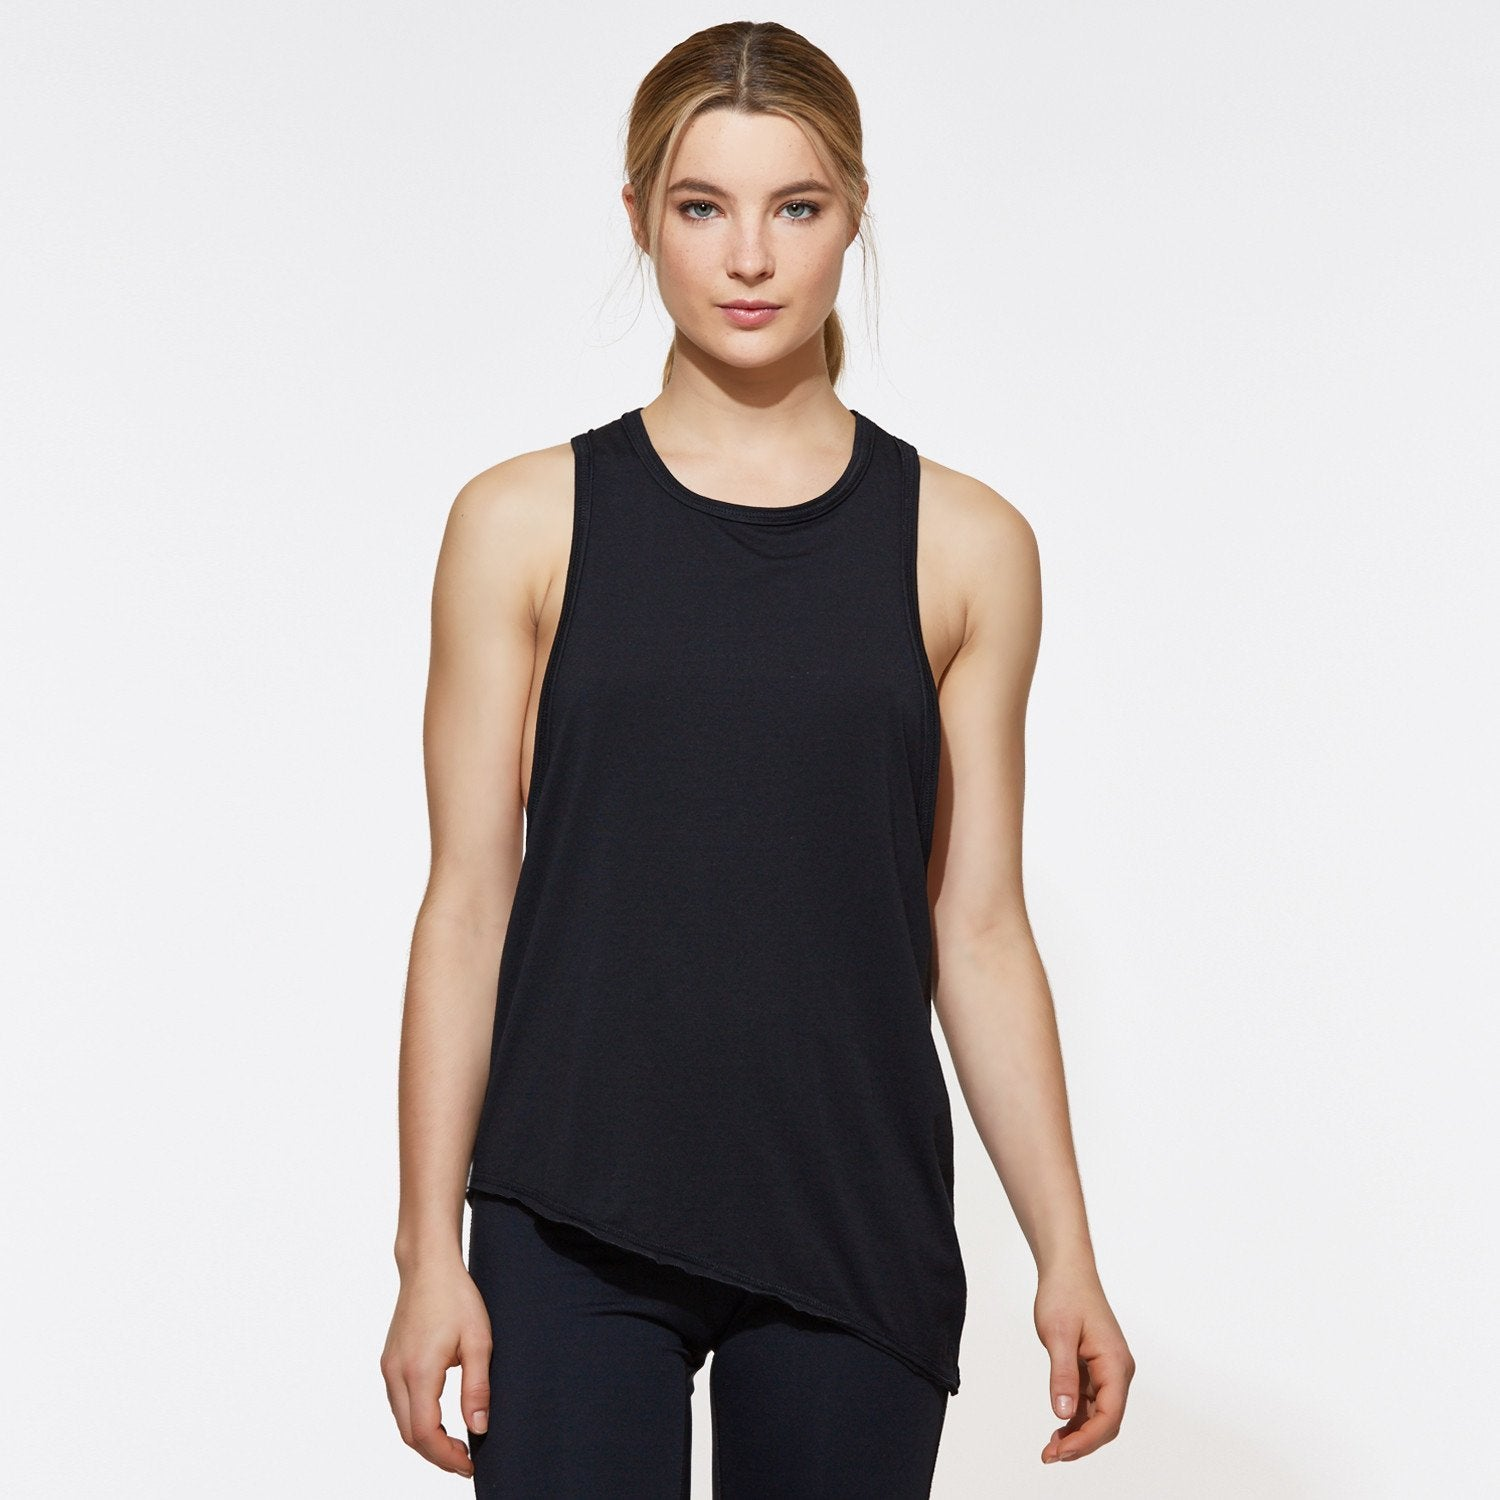 6494bfbe80 Fly Loose Fit Workout Tank Top – HYPERmelon